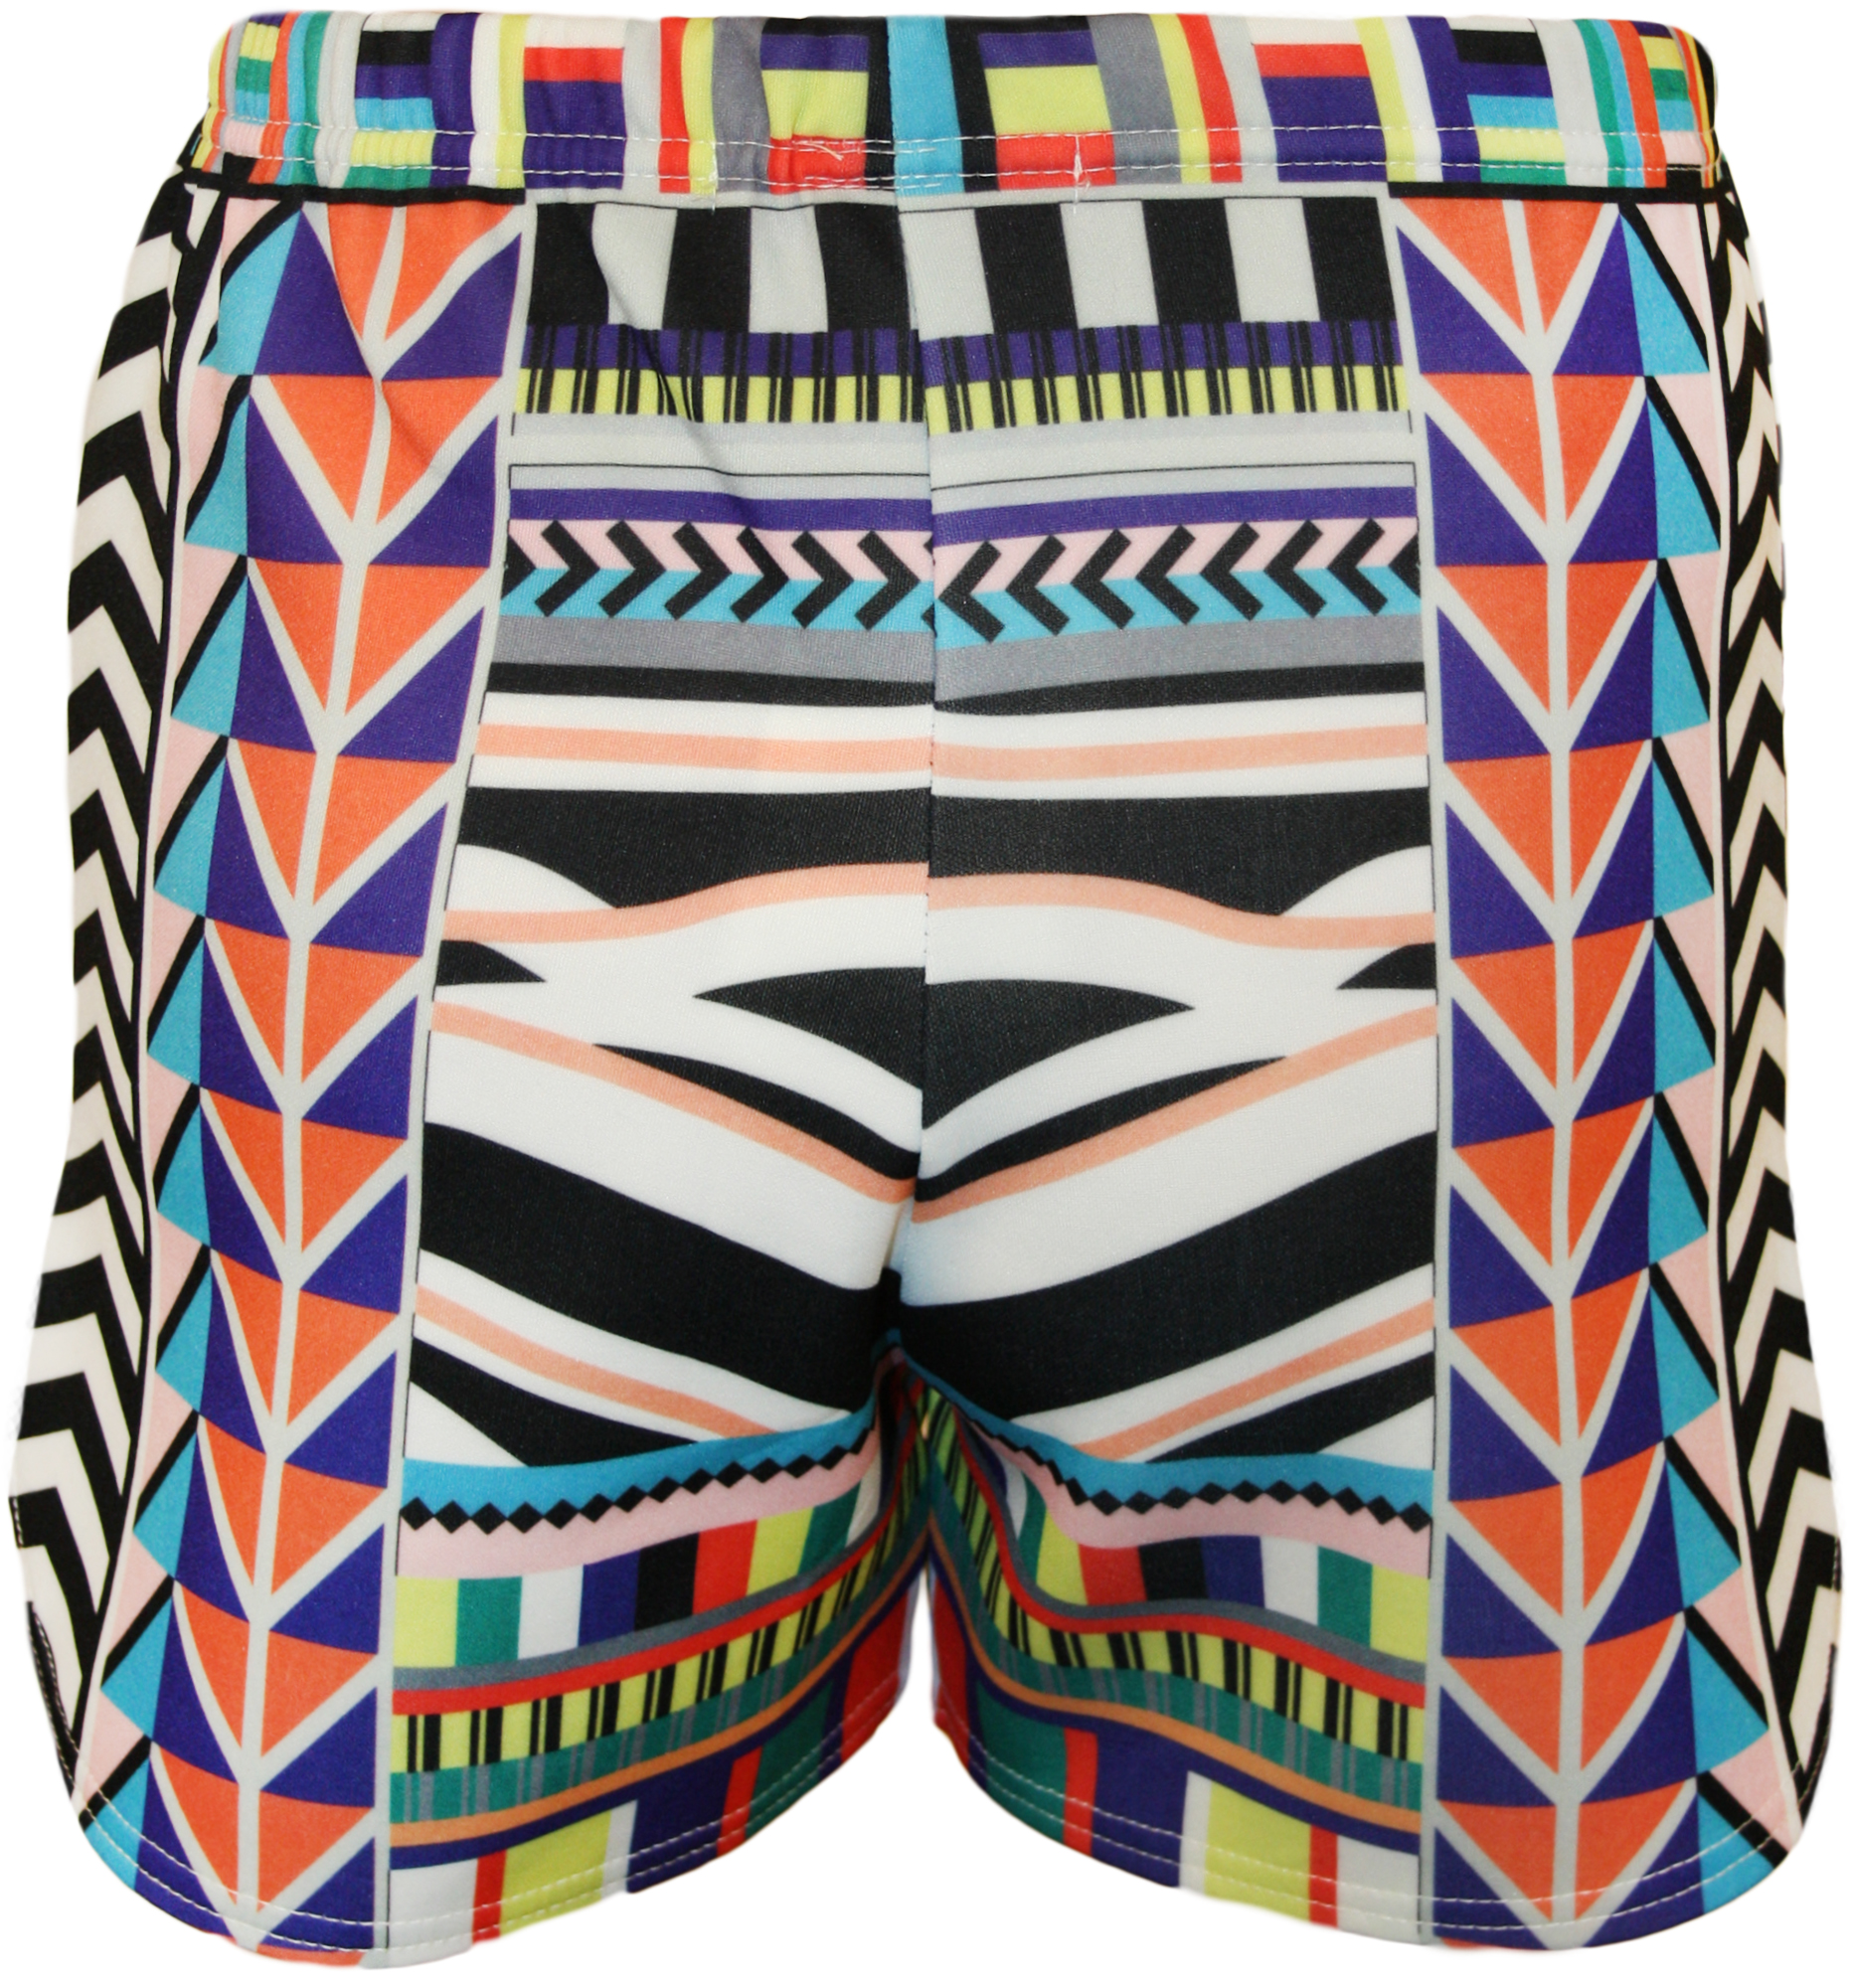 New-Womens-Celeb-Aztec-Tribal-Print-Ladies-High-Waisted-Hot-Pants-Shorts-8-14